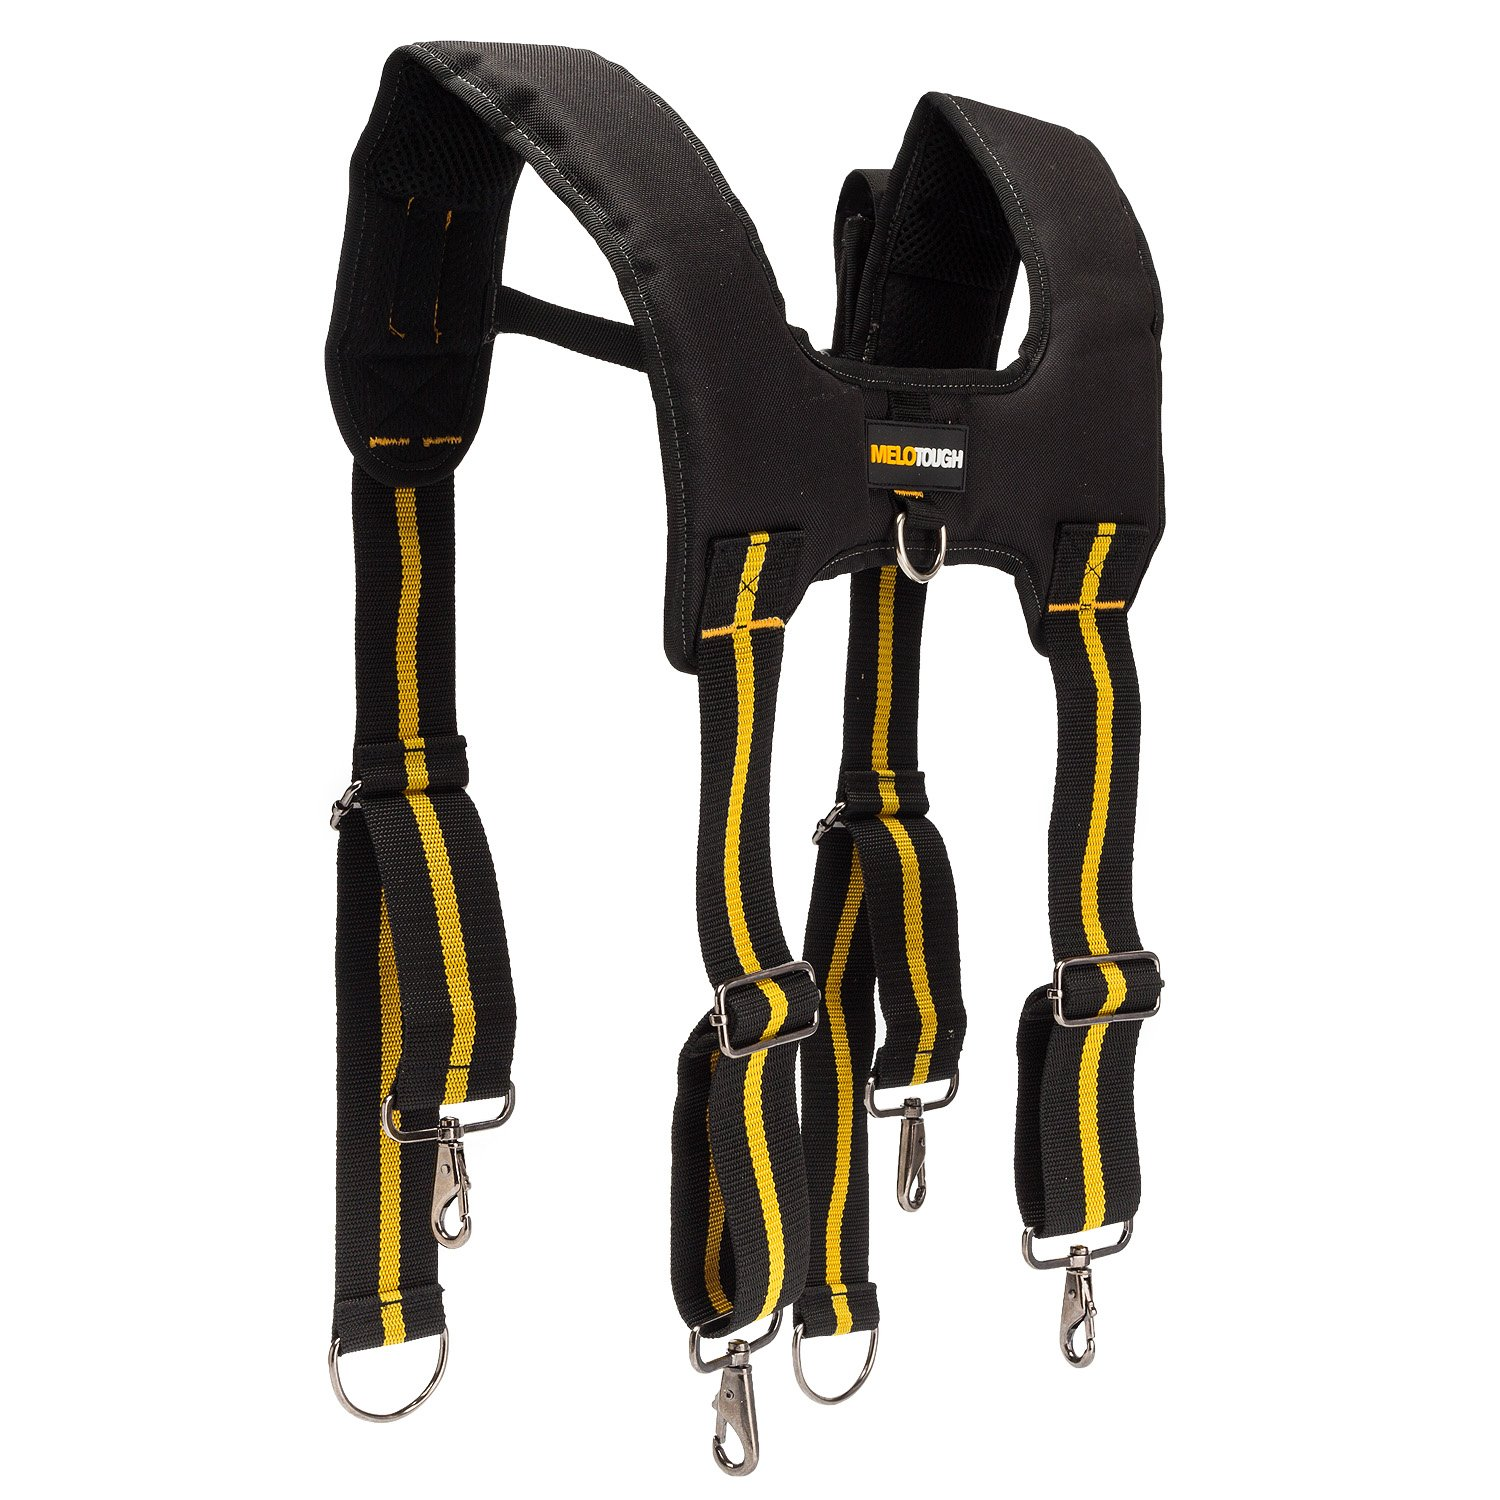 Tool Belt Suspenders|Padded Suspenders with movable phone holder Tape Holder Pencil holder,Flexible Adjustable Straps, suspenders Loop Attachments for carpenter electrician work Suspension Rig by Melo Tough (Image #4)